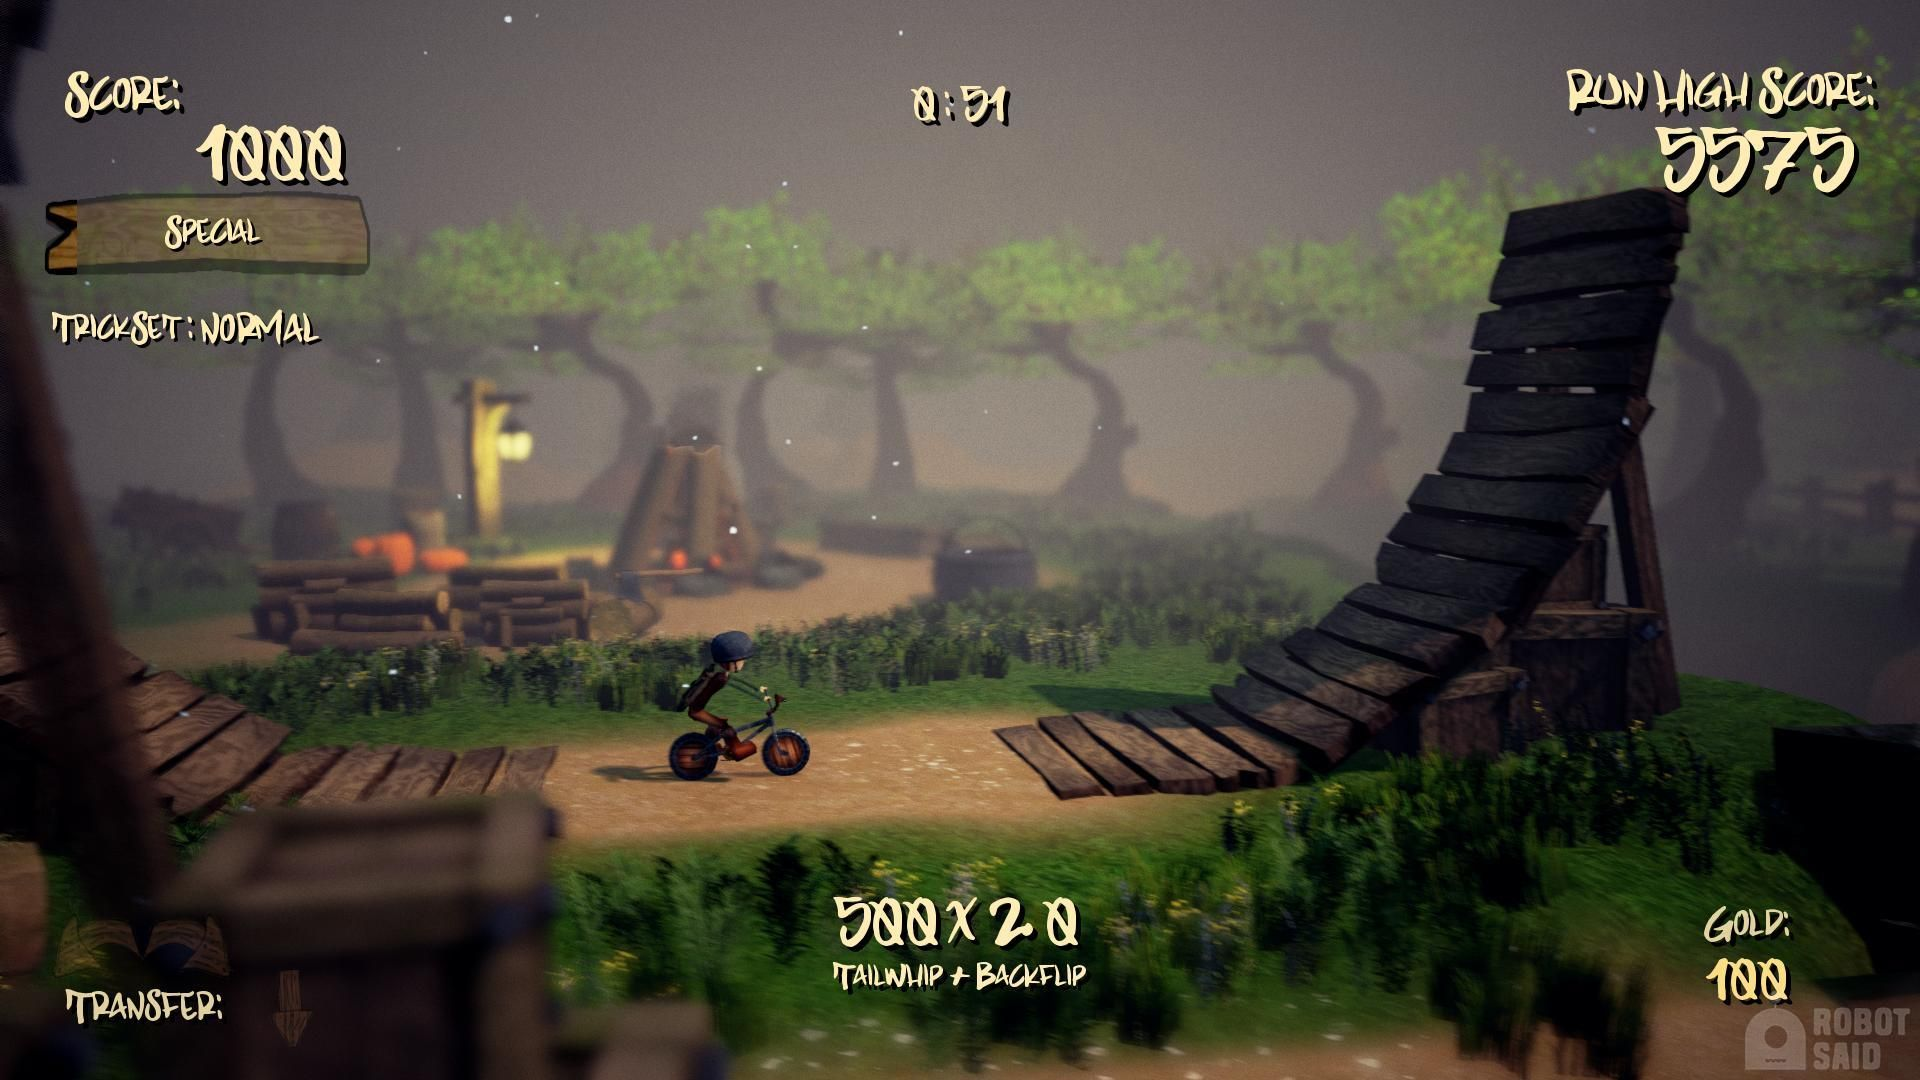 Convicted galaxy now on steam greenlight robotsaid pinterest convicted galaxy now on steam greenlight robotsaid pinterest campaign thecheapjerseys Images